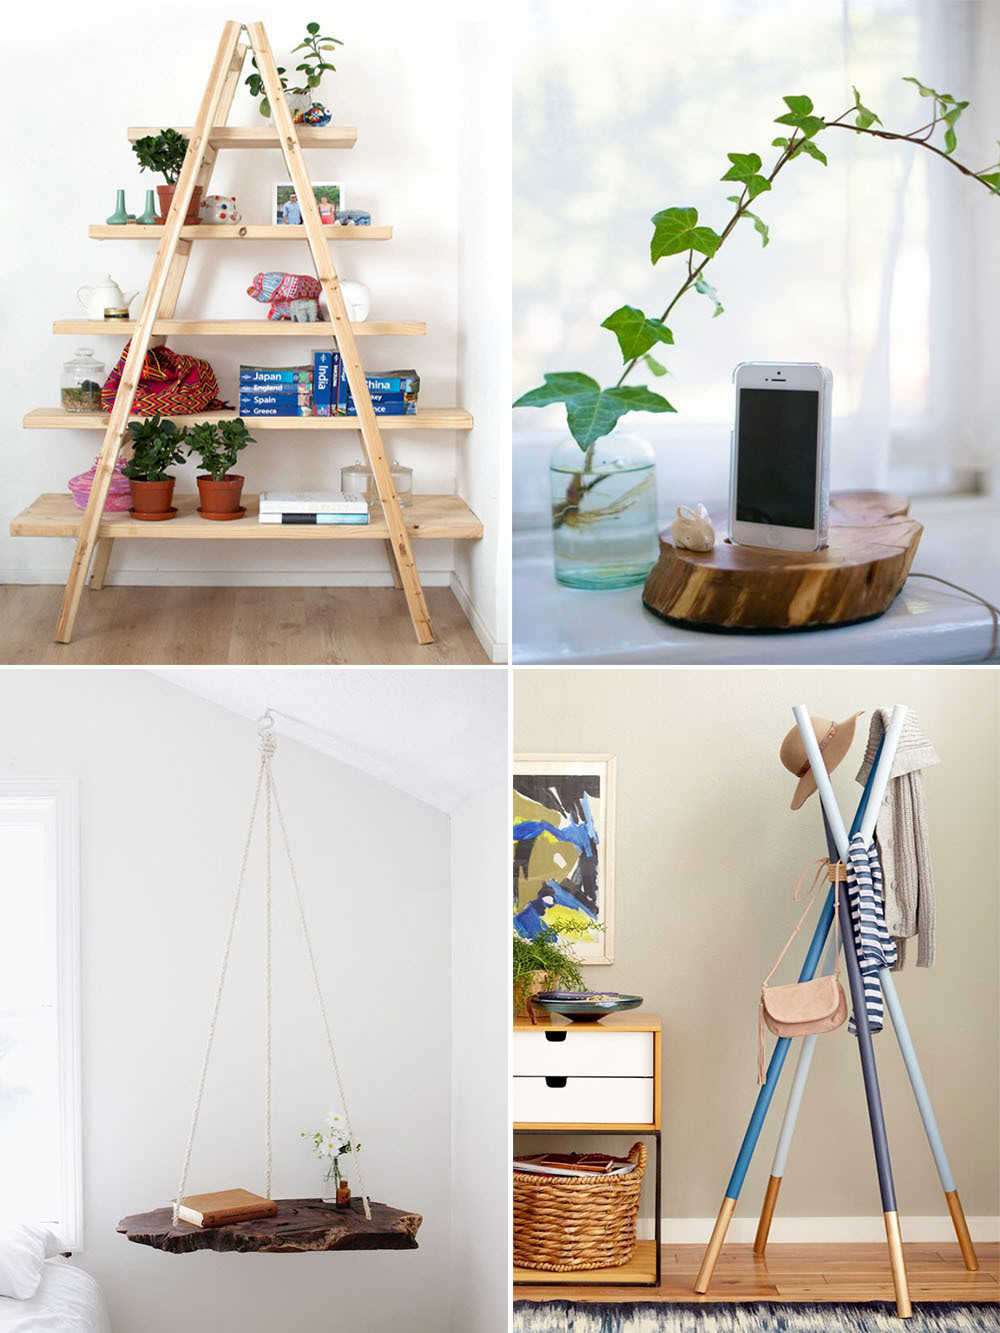 Simple DIY Wood Projects  Roundup 10 Beginner Woodworking Projects Using Basic